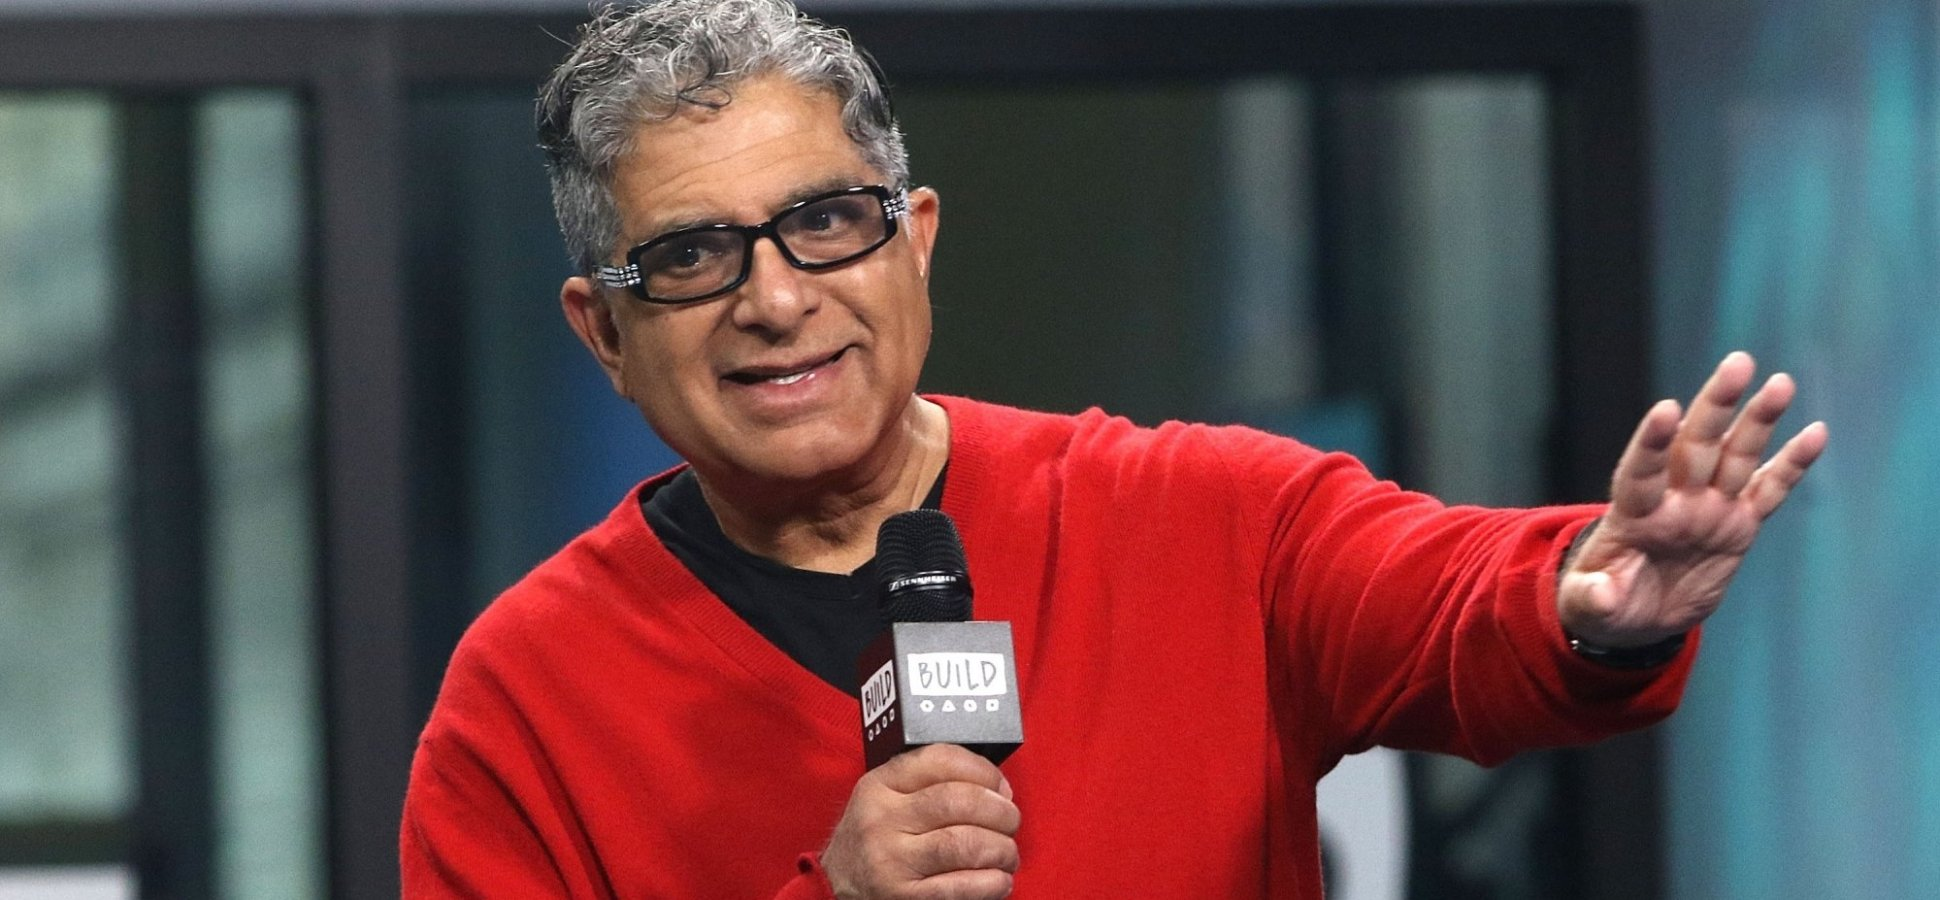 The Best Thing Deepak Chopra Ever Said About How to Change Your Life For the Better